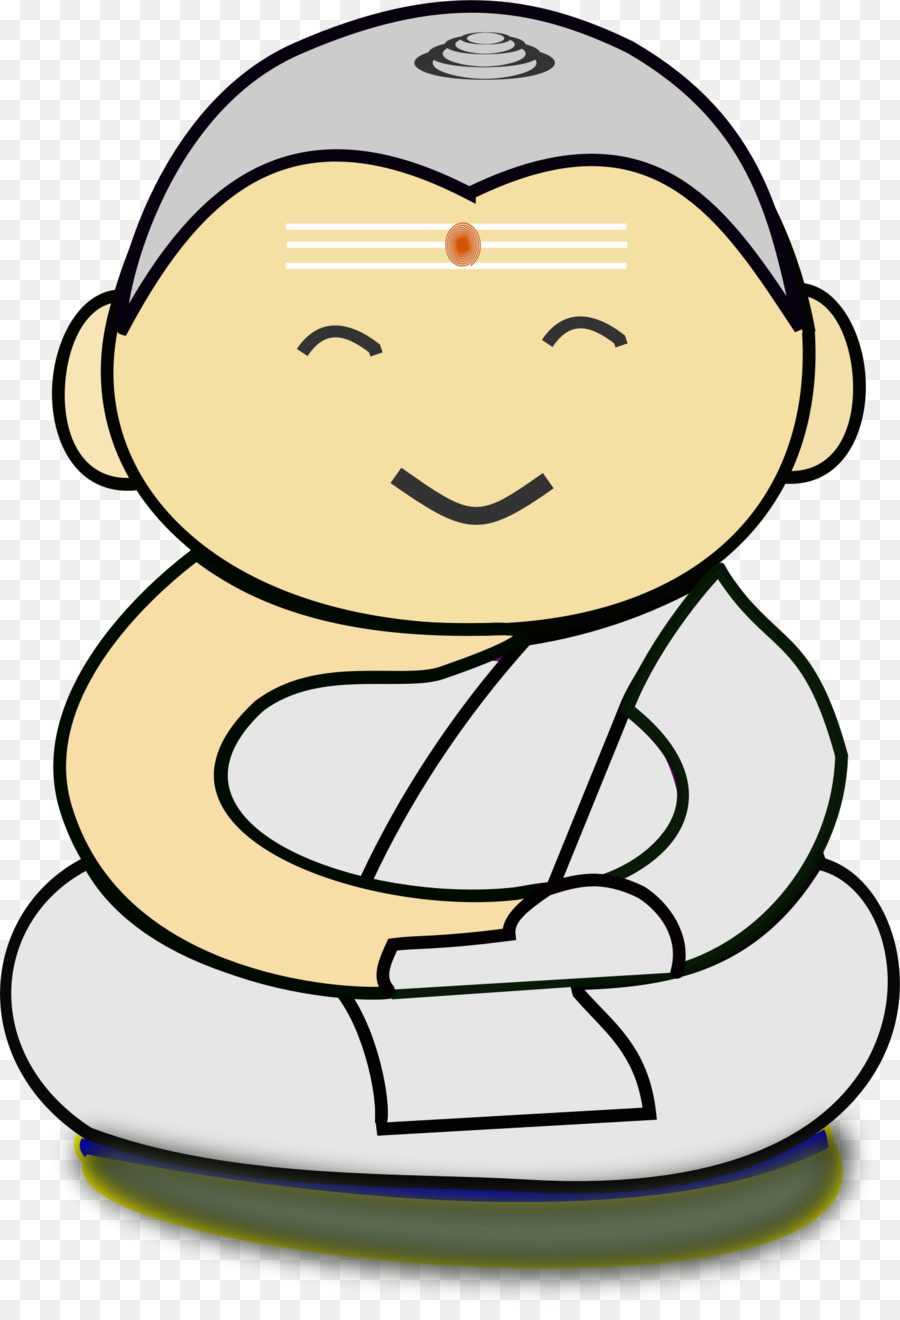 hight resolution of buddhism buddharupa religion clip art buddha clipart png download 1476 2141 free transparent buddhism png download